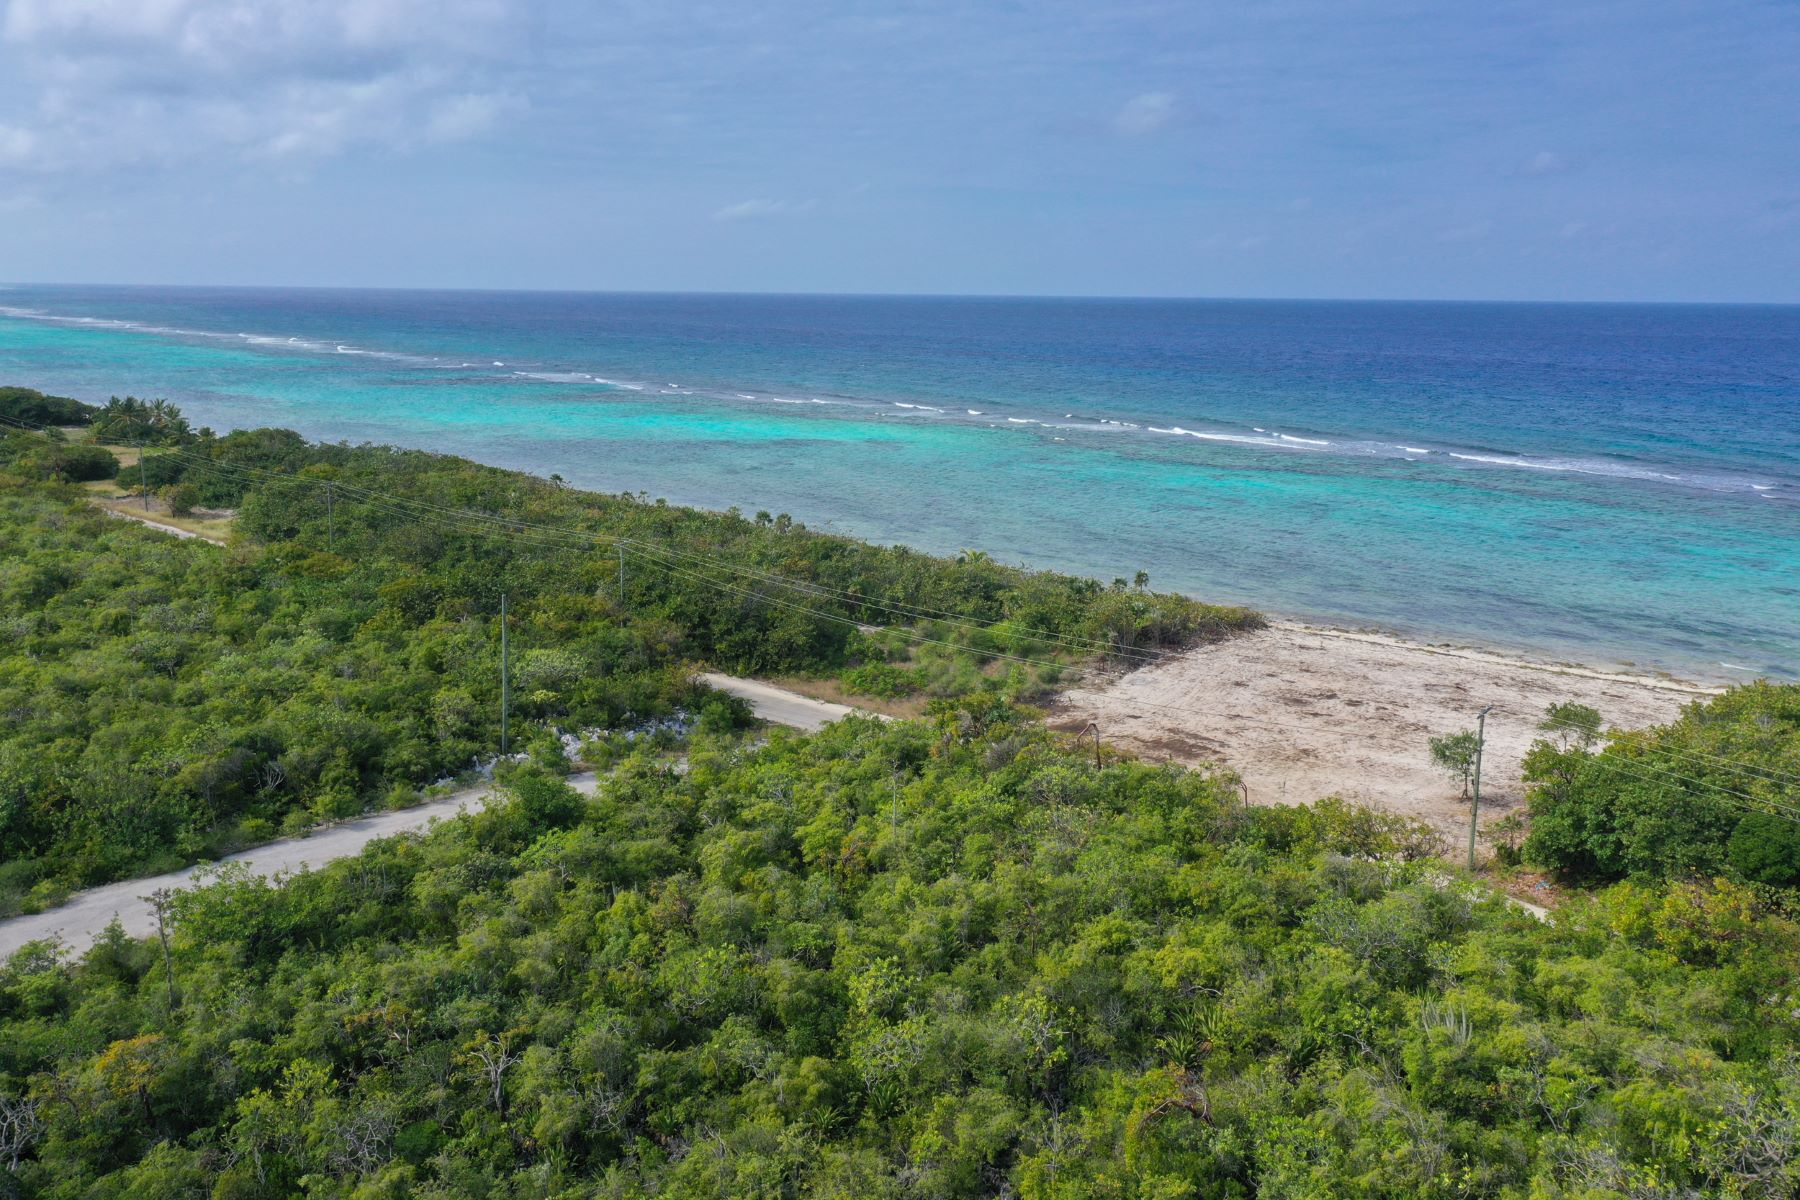 Land for Sale at Little Cayman ocean view land Other Little Cayman, Little Cayman Cayman Islands